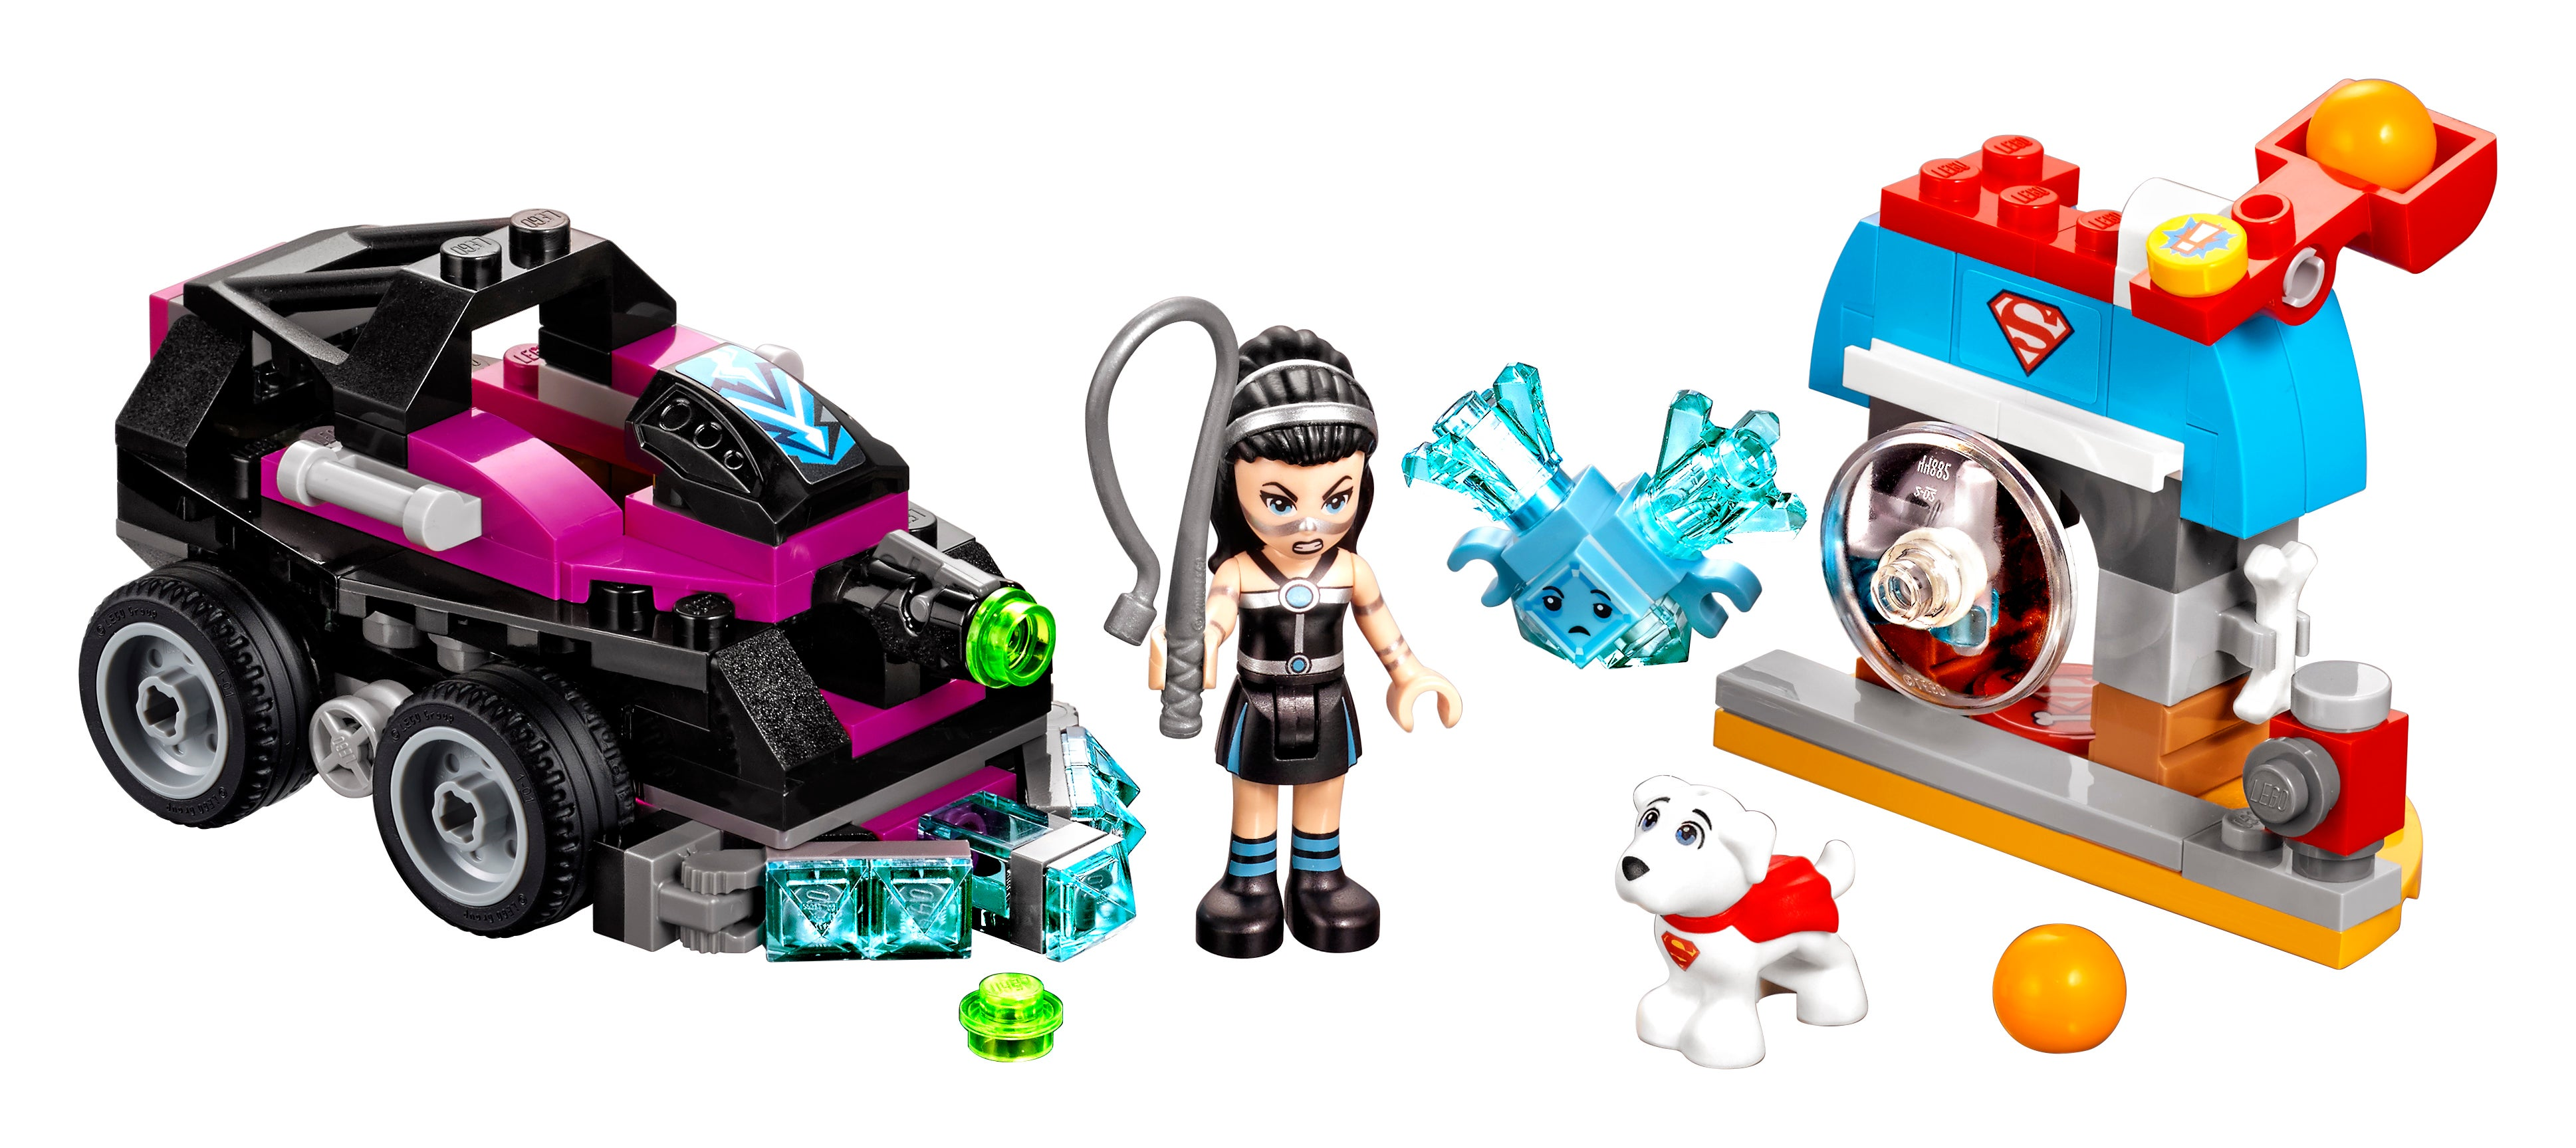 Dc Super Hero Girls Sets Make The Most Of Legos Friends Line